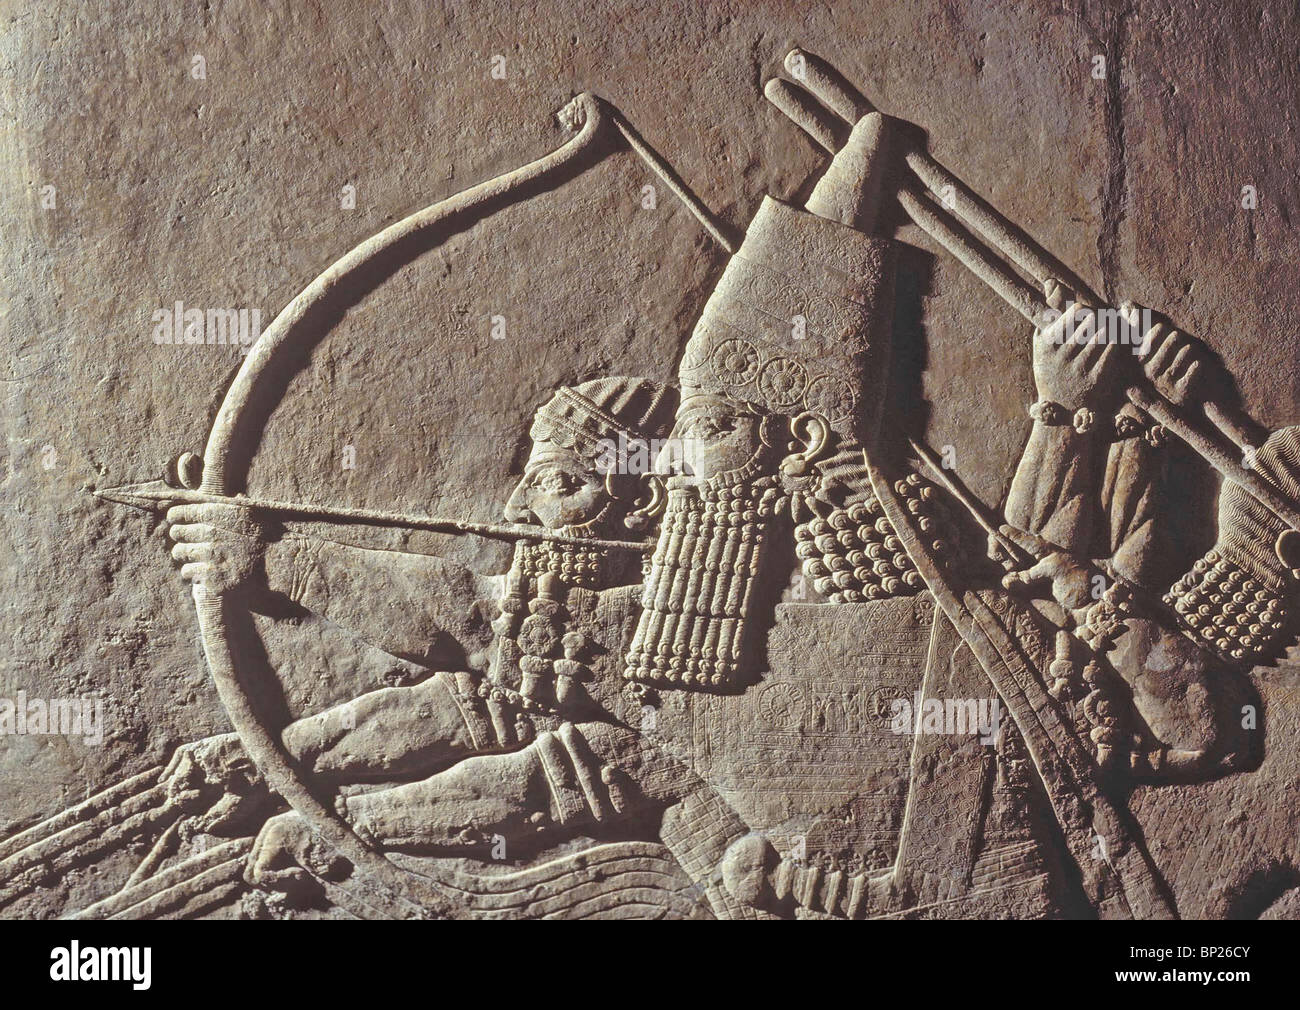 1013. KING ASHURBANIPAL OF ASSYRIA, 668 - 627 B.C. RELIEF FROM THE ROYAL PALACE IN NINVEH - Stock Image